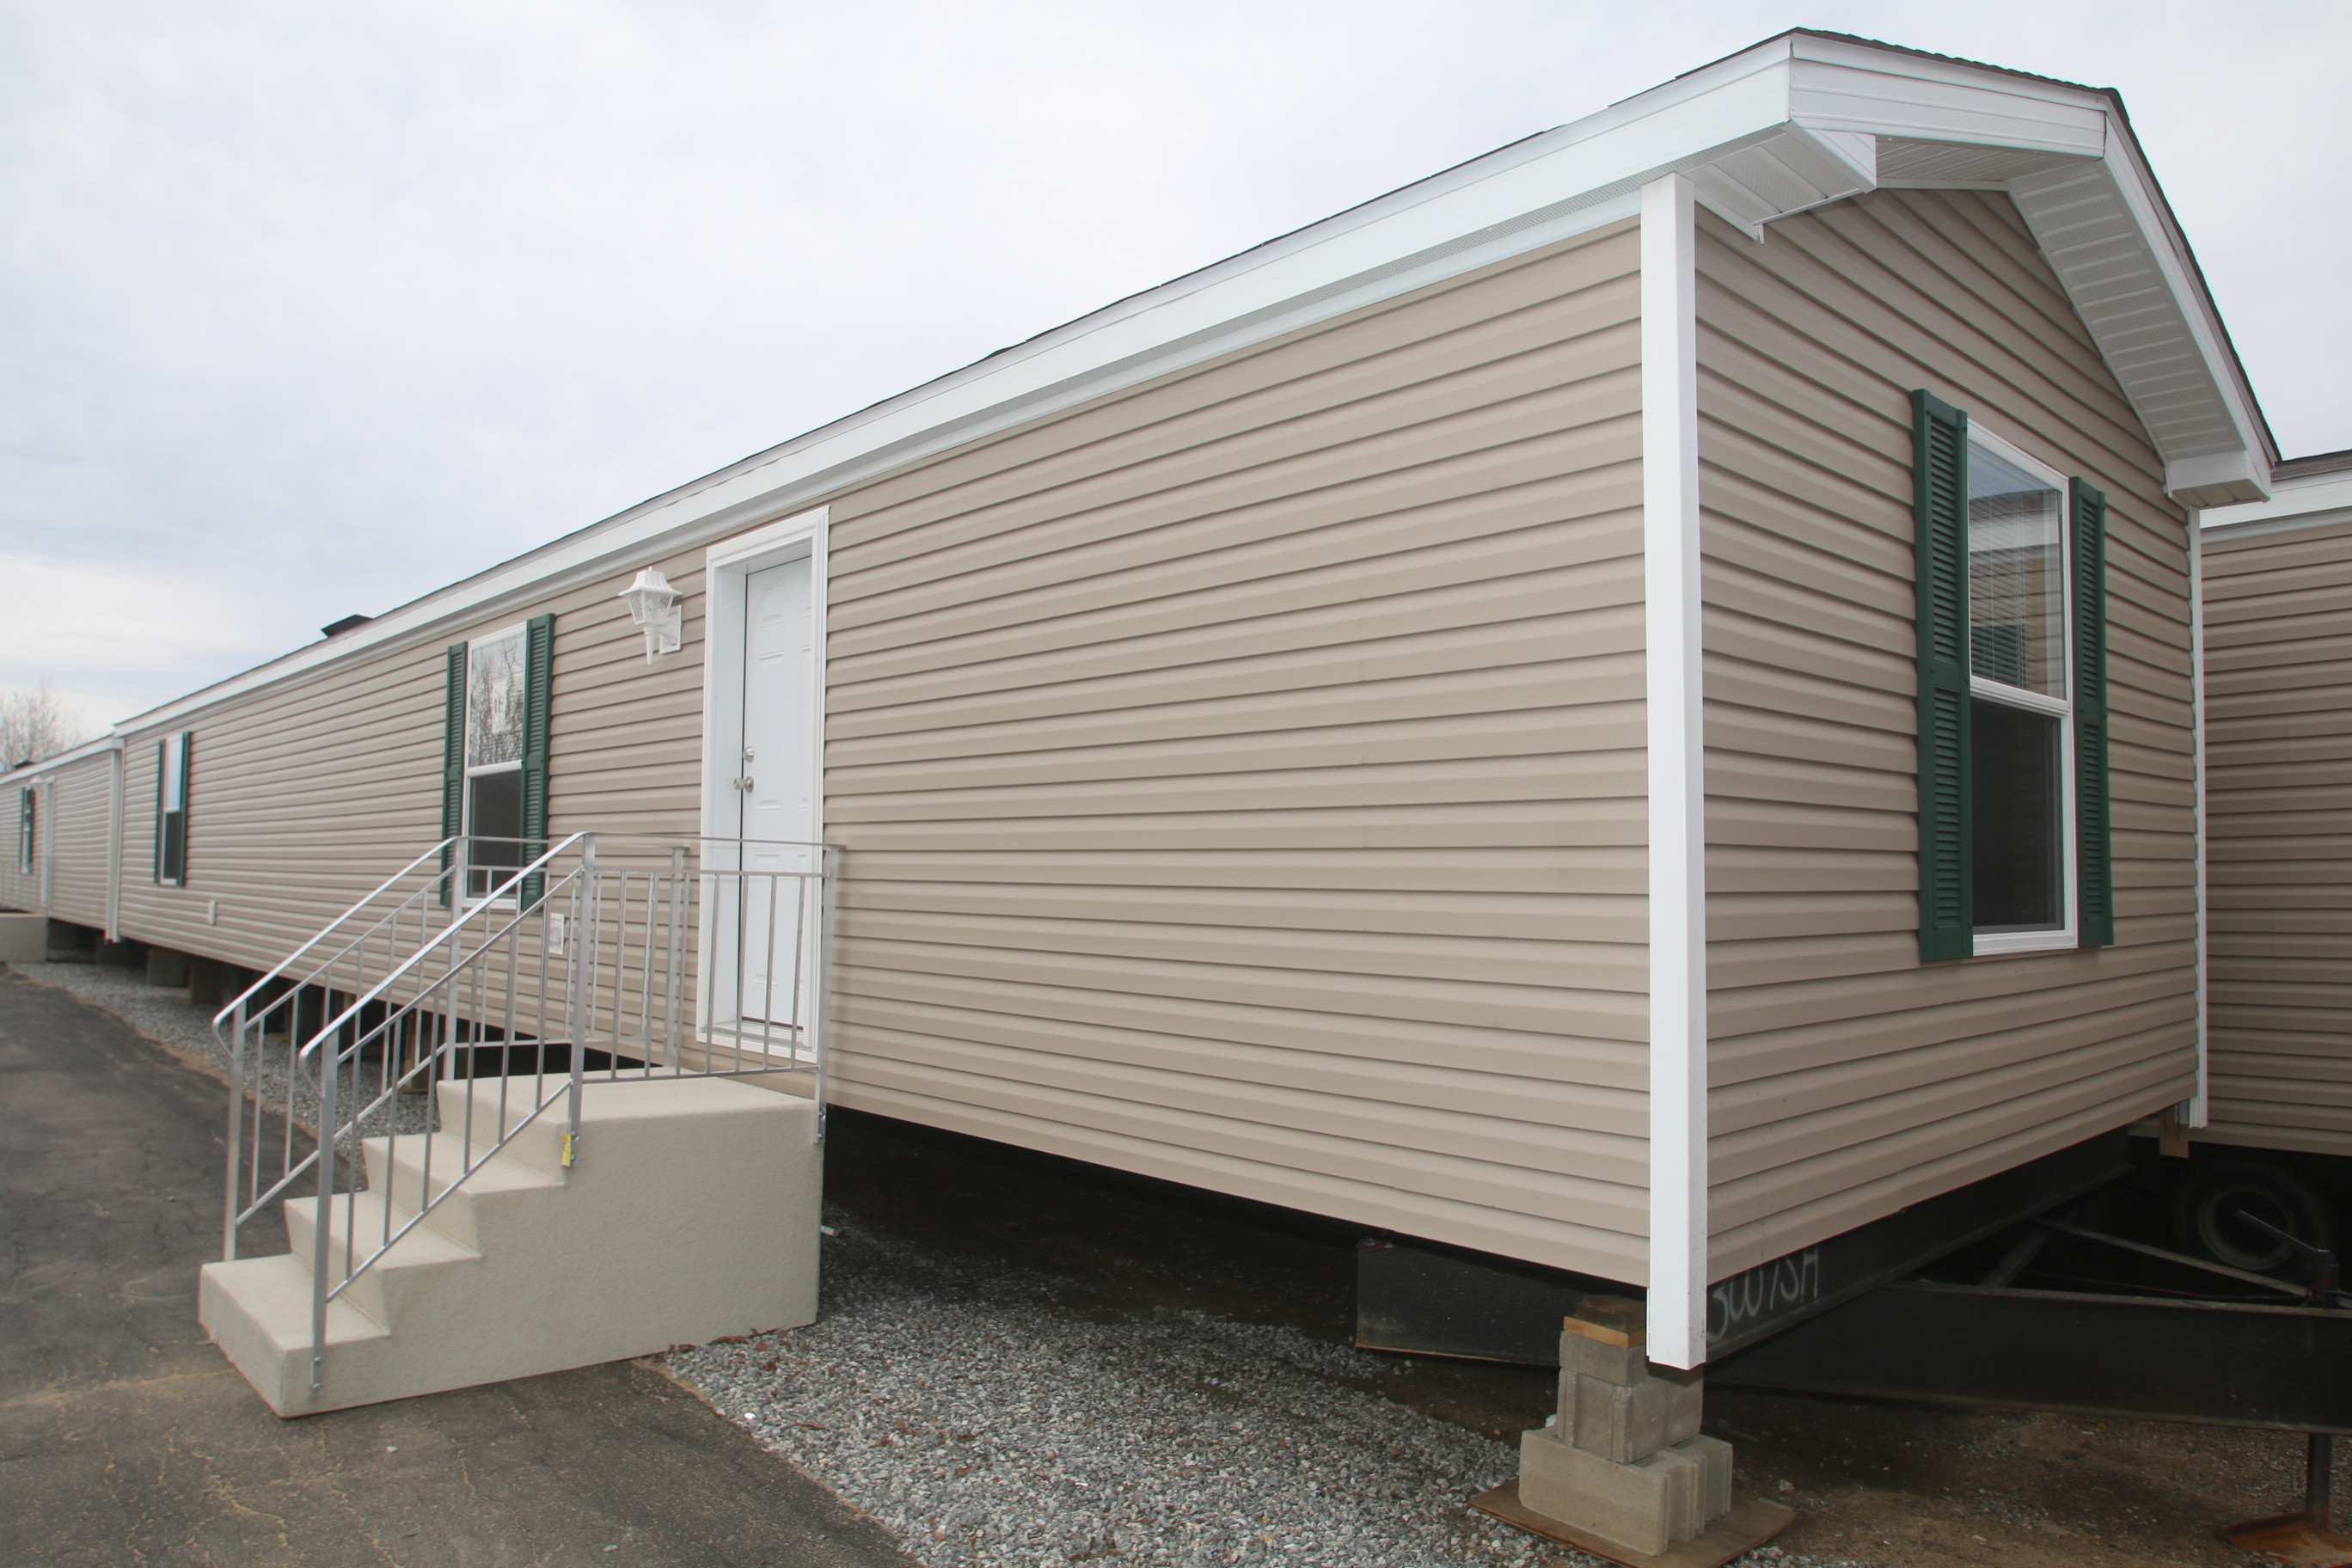 Colony DS134 Type: Single Wide Square Feet: 896. Bedrooms: 2 Bedrooms  Dimensions: 14x64. Manufacturer: Colony Price Range: $39,995. Location:  Tilton, NH